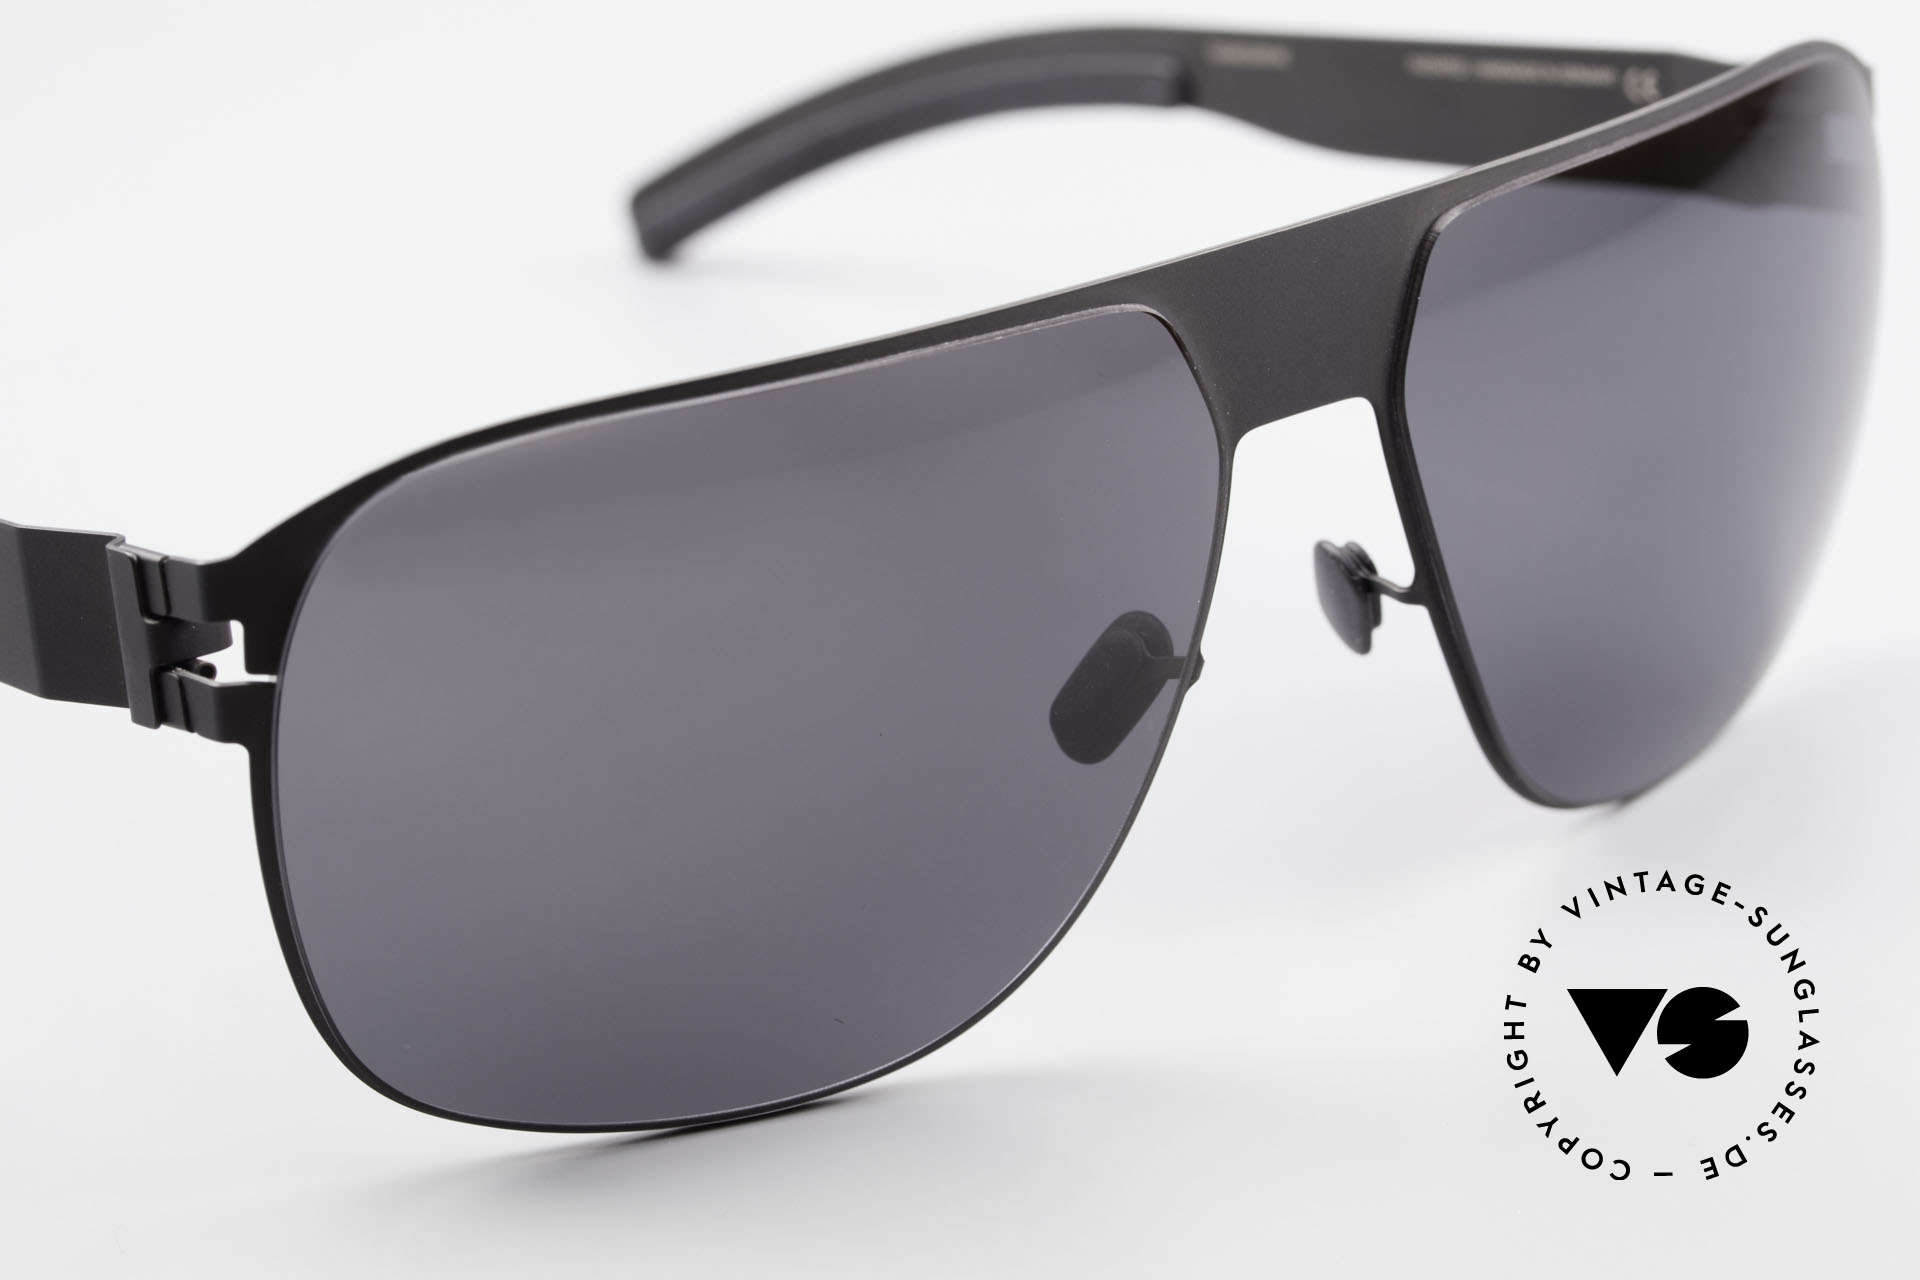 Mykita Tim No 1 Collection Shades 2011's, top-notch quality, made in Germany (Berlin-Kreuzberg), Made for Men